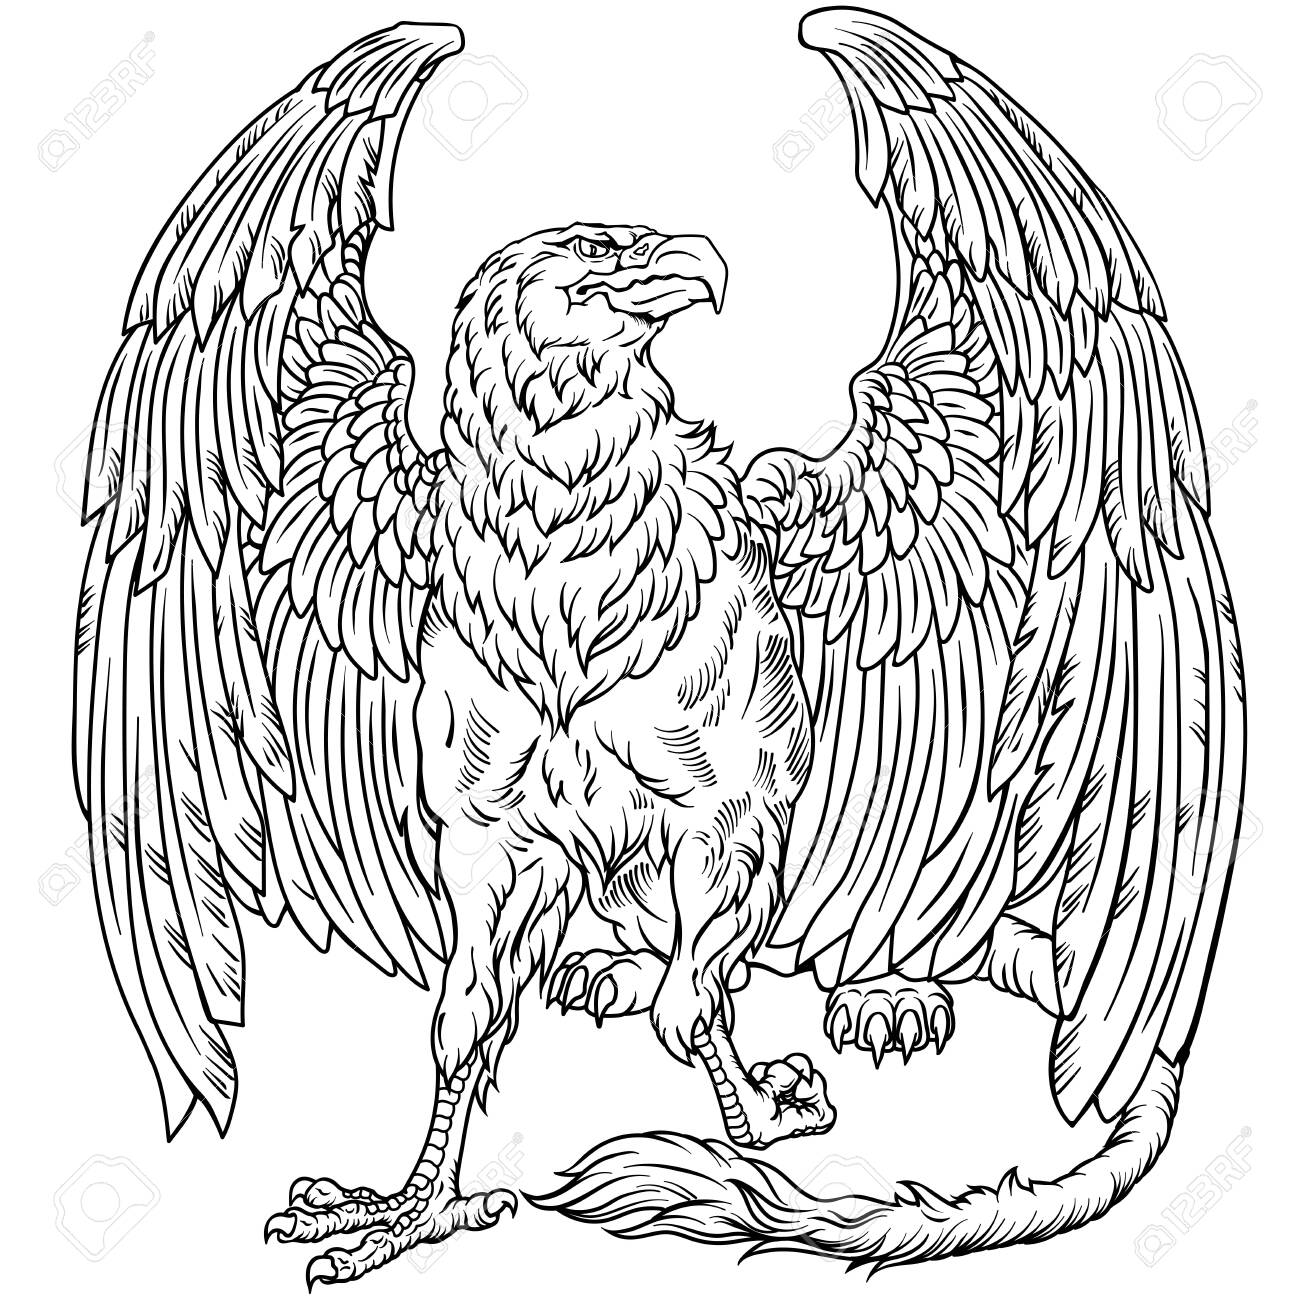 Griffin Griffon Or Gryphon A Mythical Beast Having The Body Royalty Free Cliparts Vectors And Stock Illustration Image 149818671 Check out our sitting lion selection for the very best in unique or custom, handmade pieces from our shops. griffin griffon or gryphon a mythical beast having the body